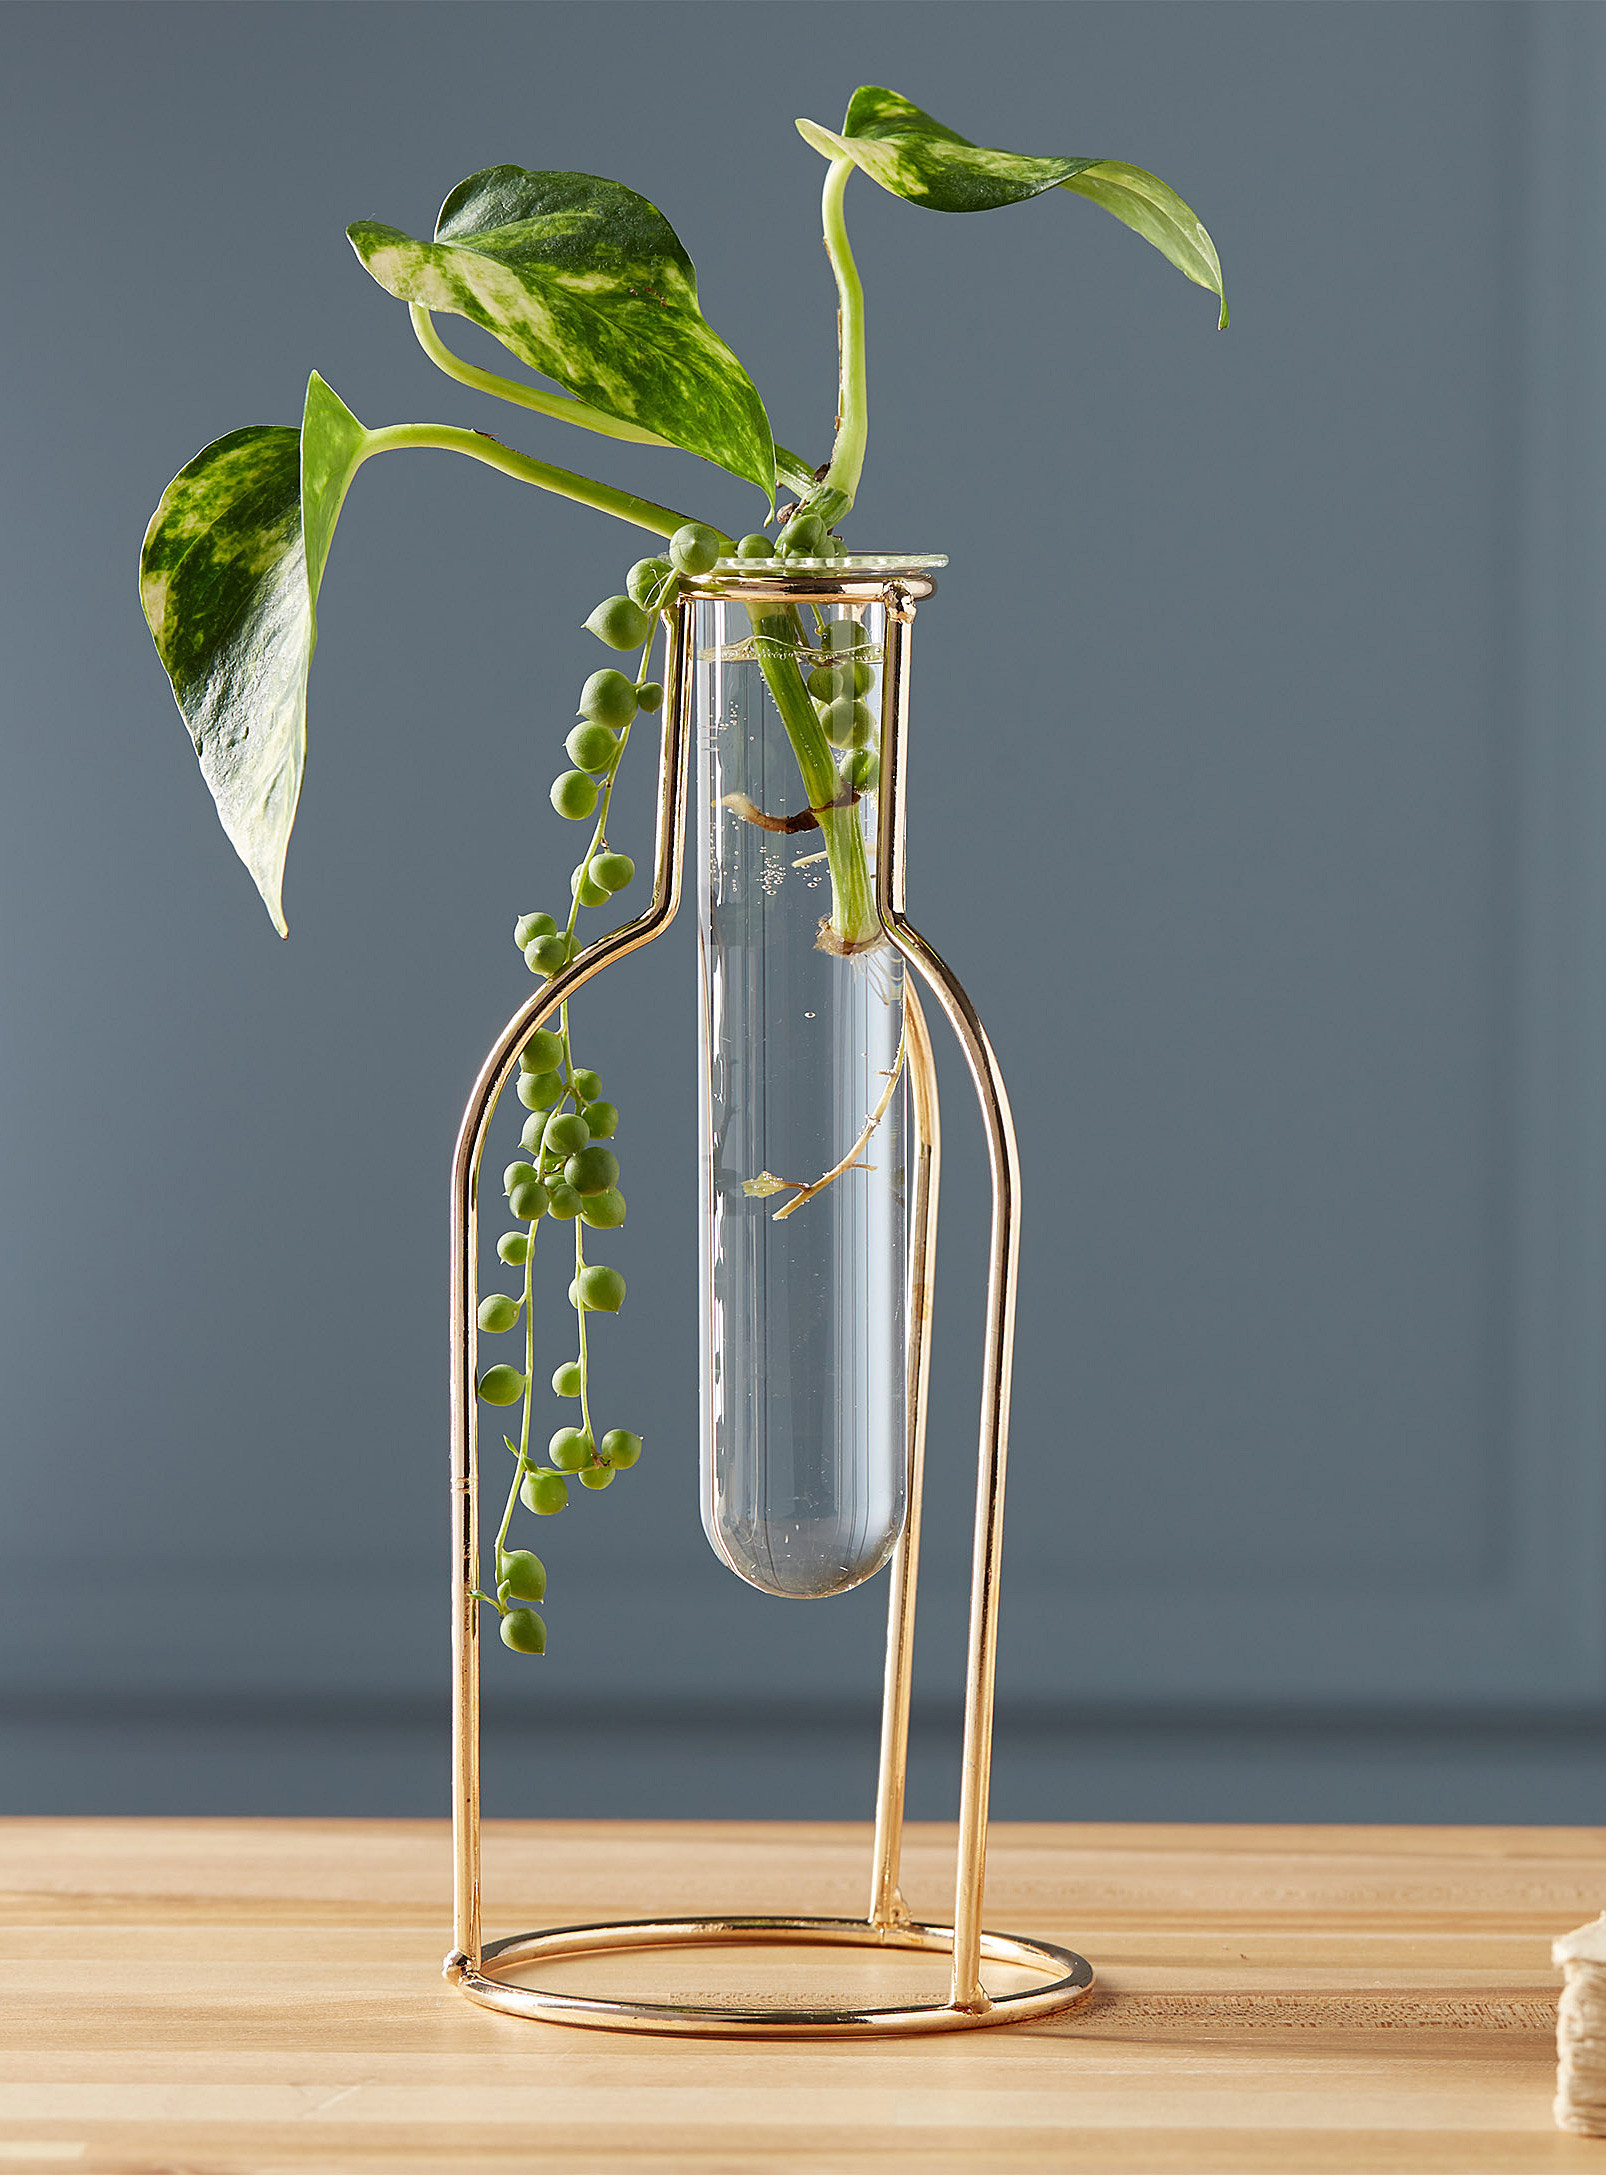 A glass vial vase in a gold wire stand